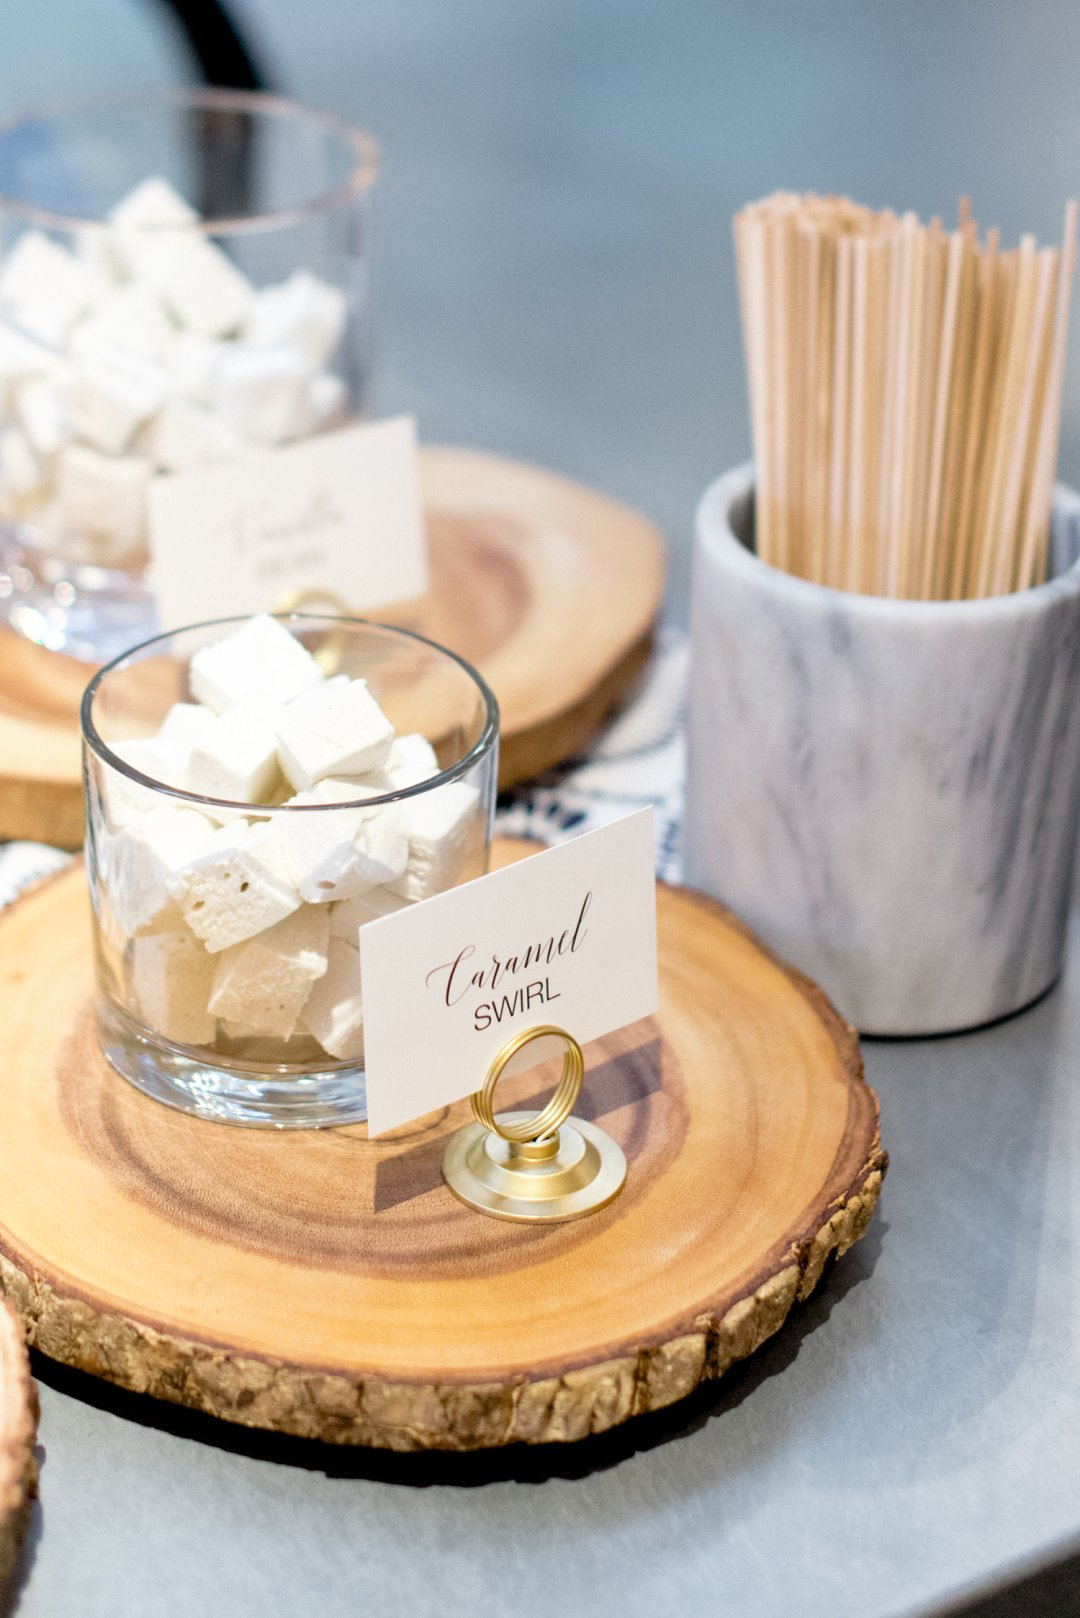 Caramel swirl marshmallows at S'mores bar